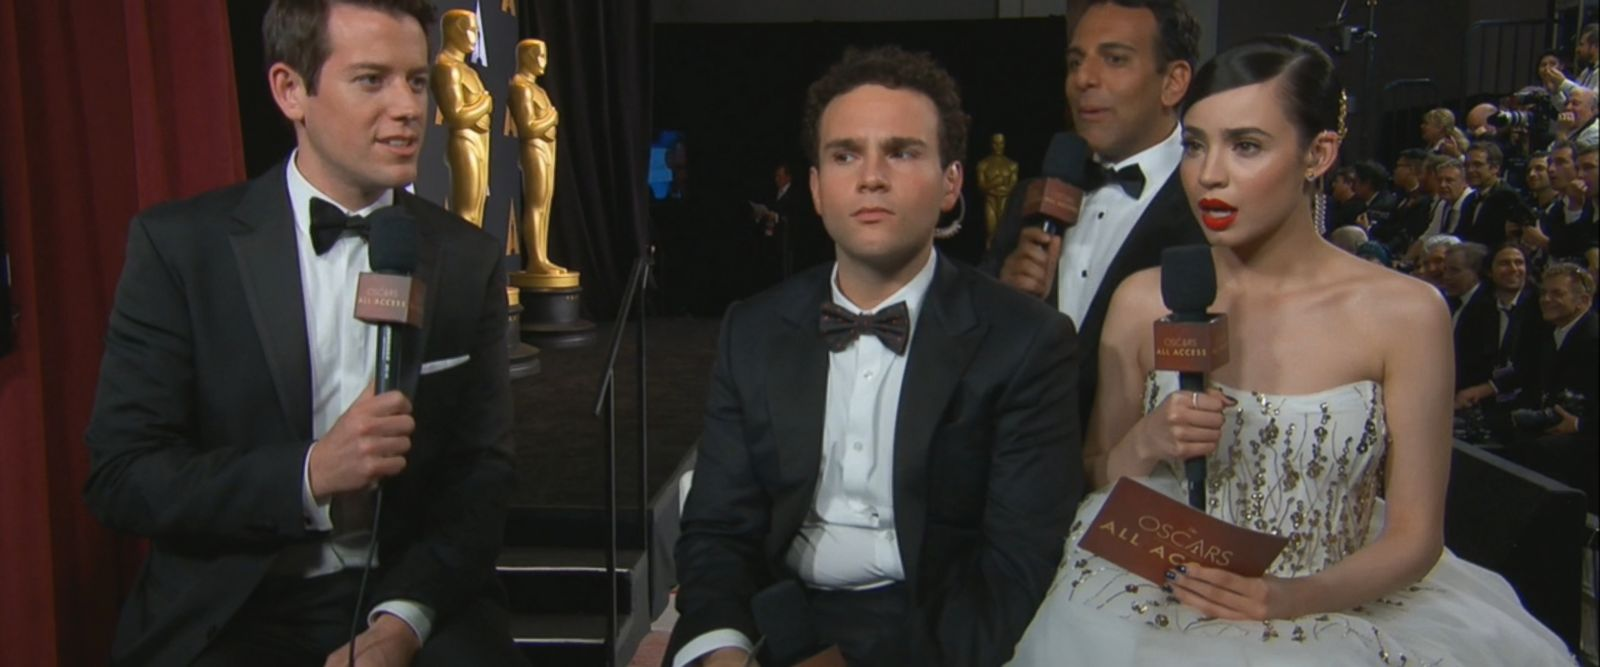 Even seasoned, backstage broadcasters were amazed at how the 89th annual Academy Awards ended.